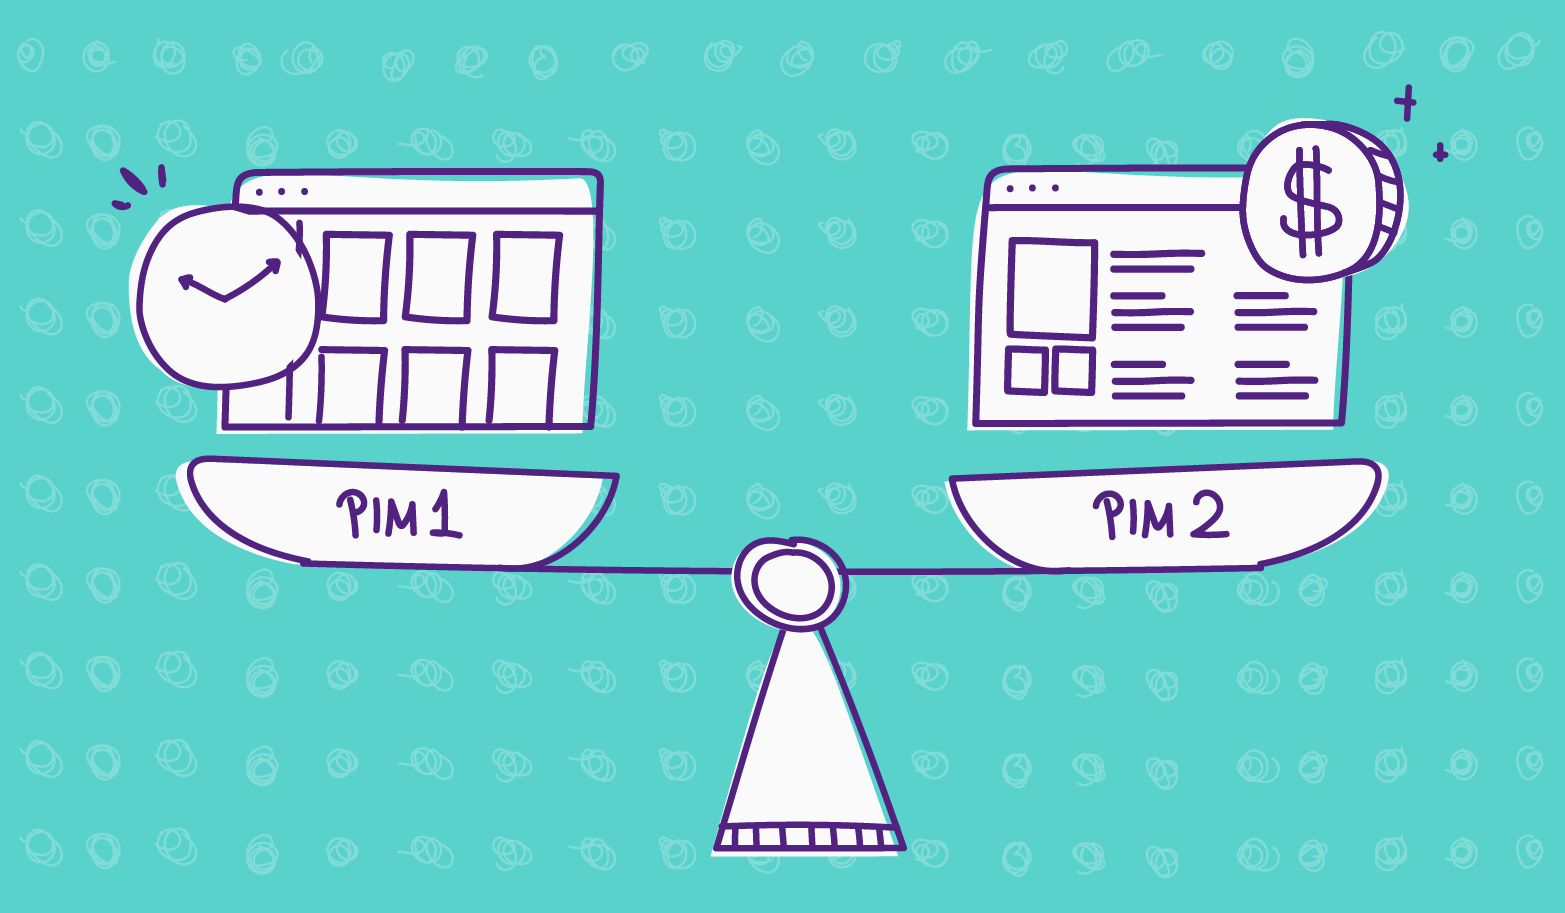 PIM Comparisons: How To Find One Suitable For SMBs Like Yours